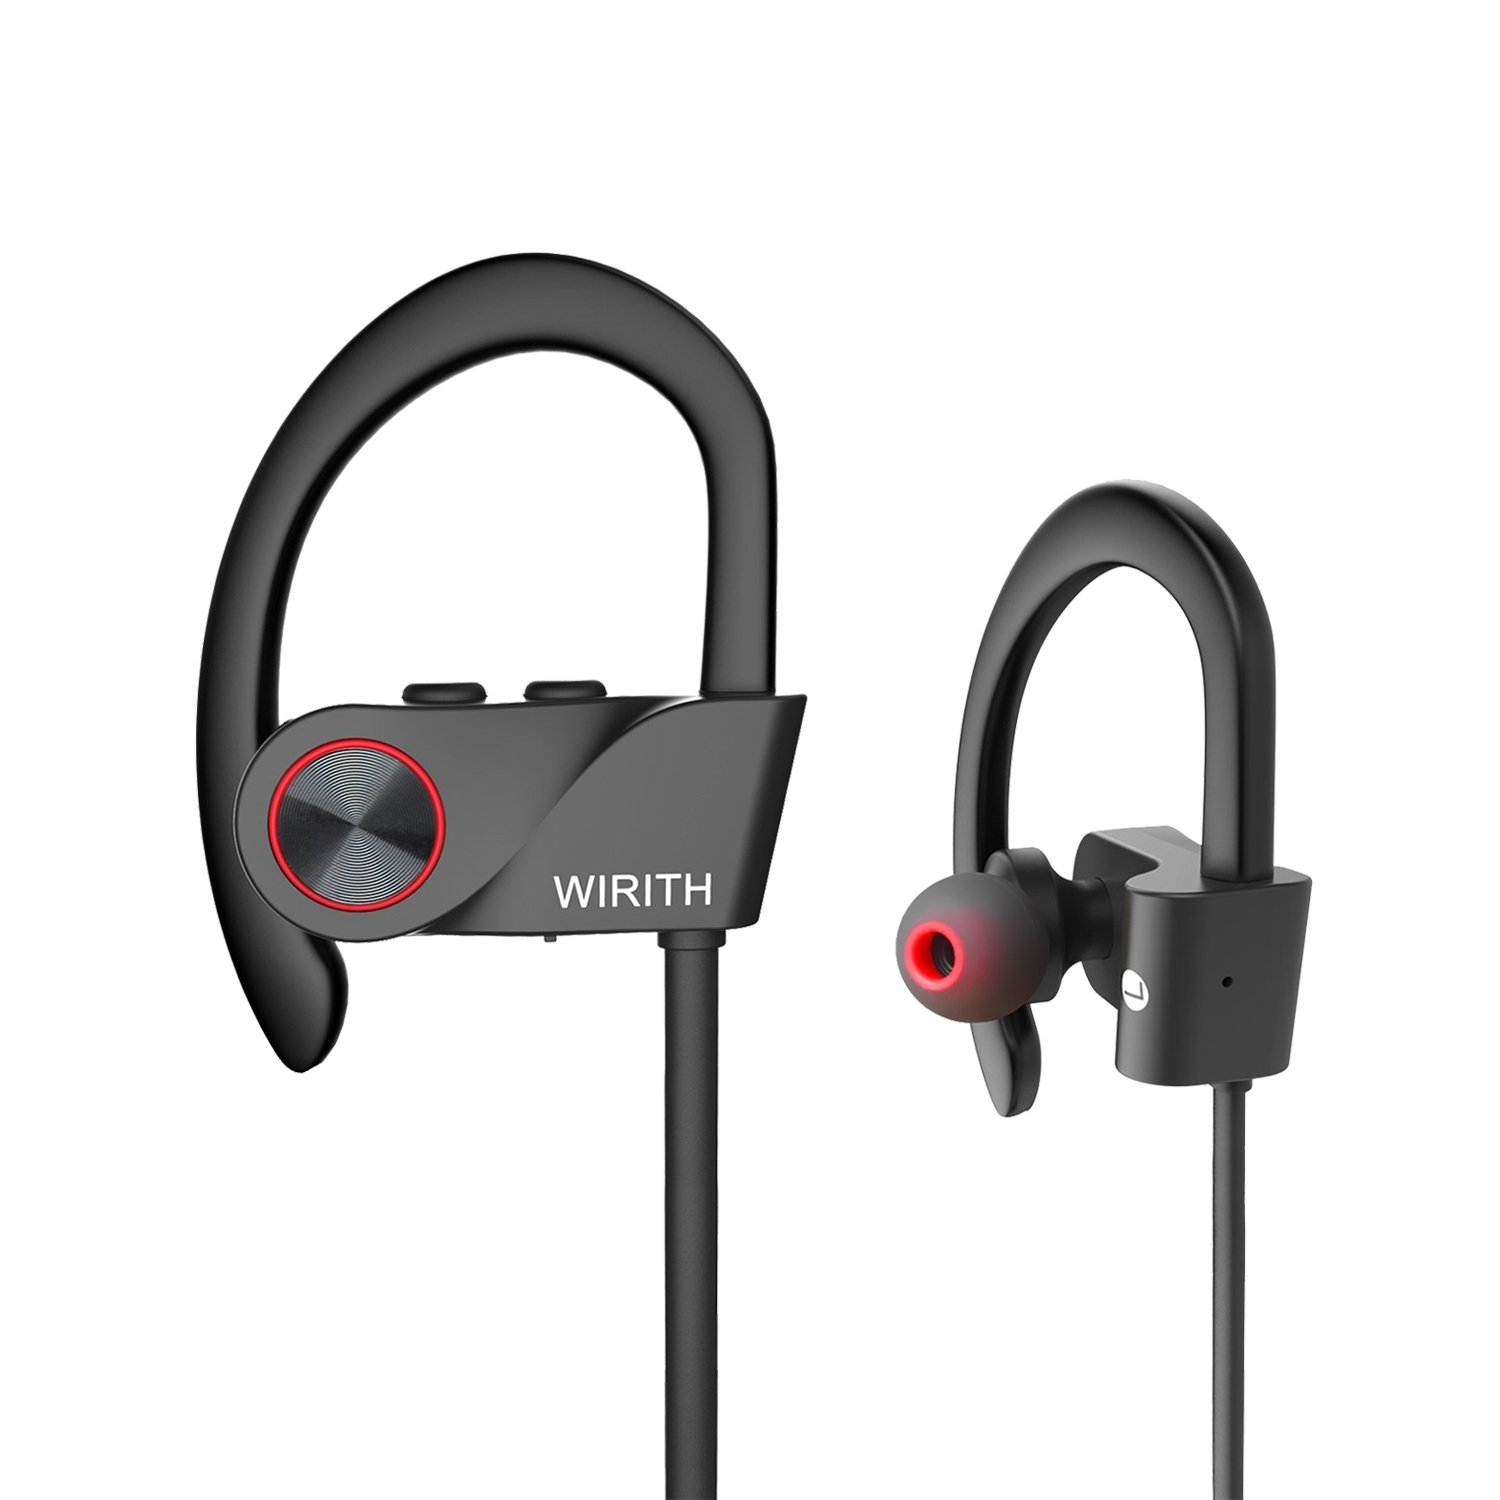 WIRITH Bluetooth Headphones, IPX6 Waterproof Sports Wireless Earbuds, In-Ear Bluetooth Headsets with Built-in Mic, HD Stereo Sound, Noise Cancelling, for Gym Running Workout by WIRITH